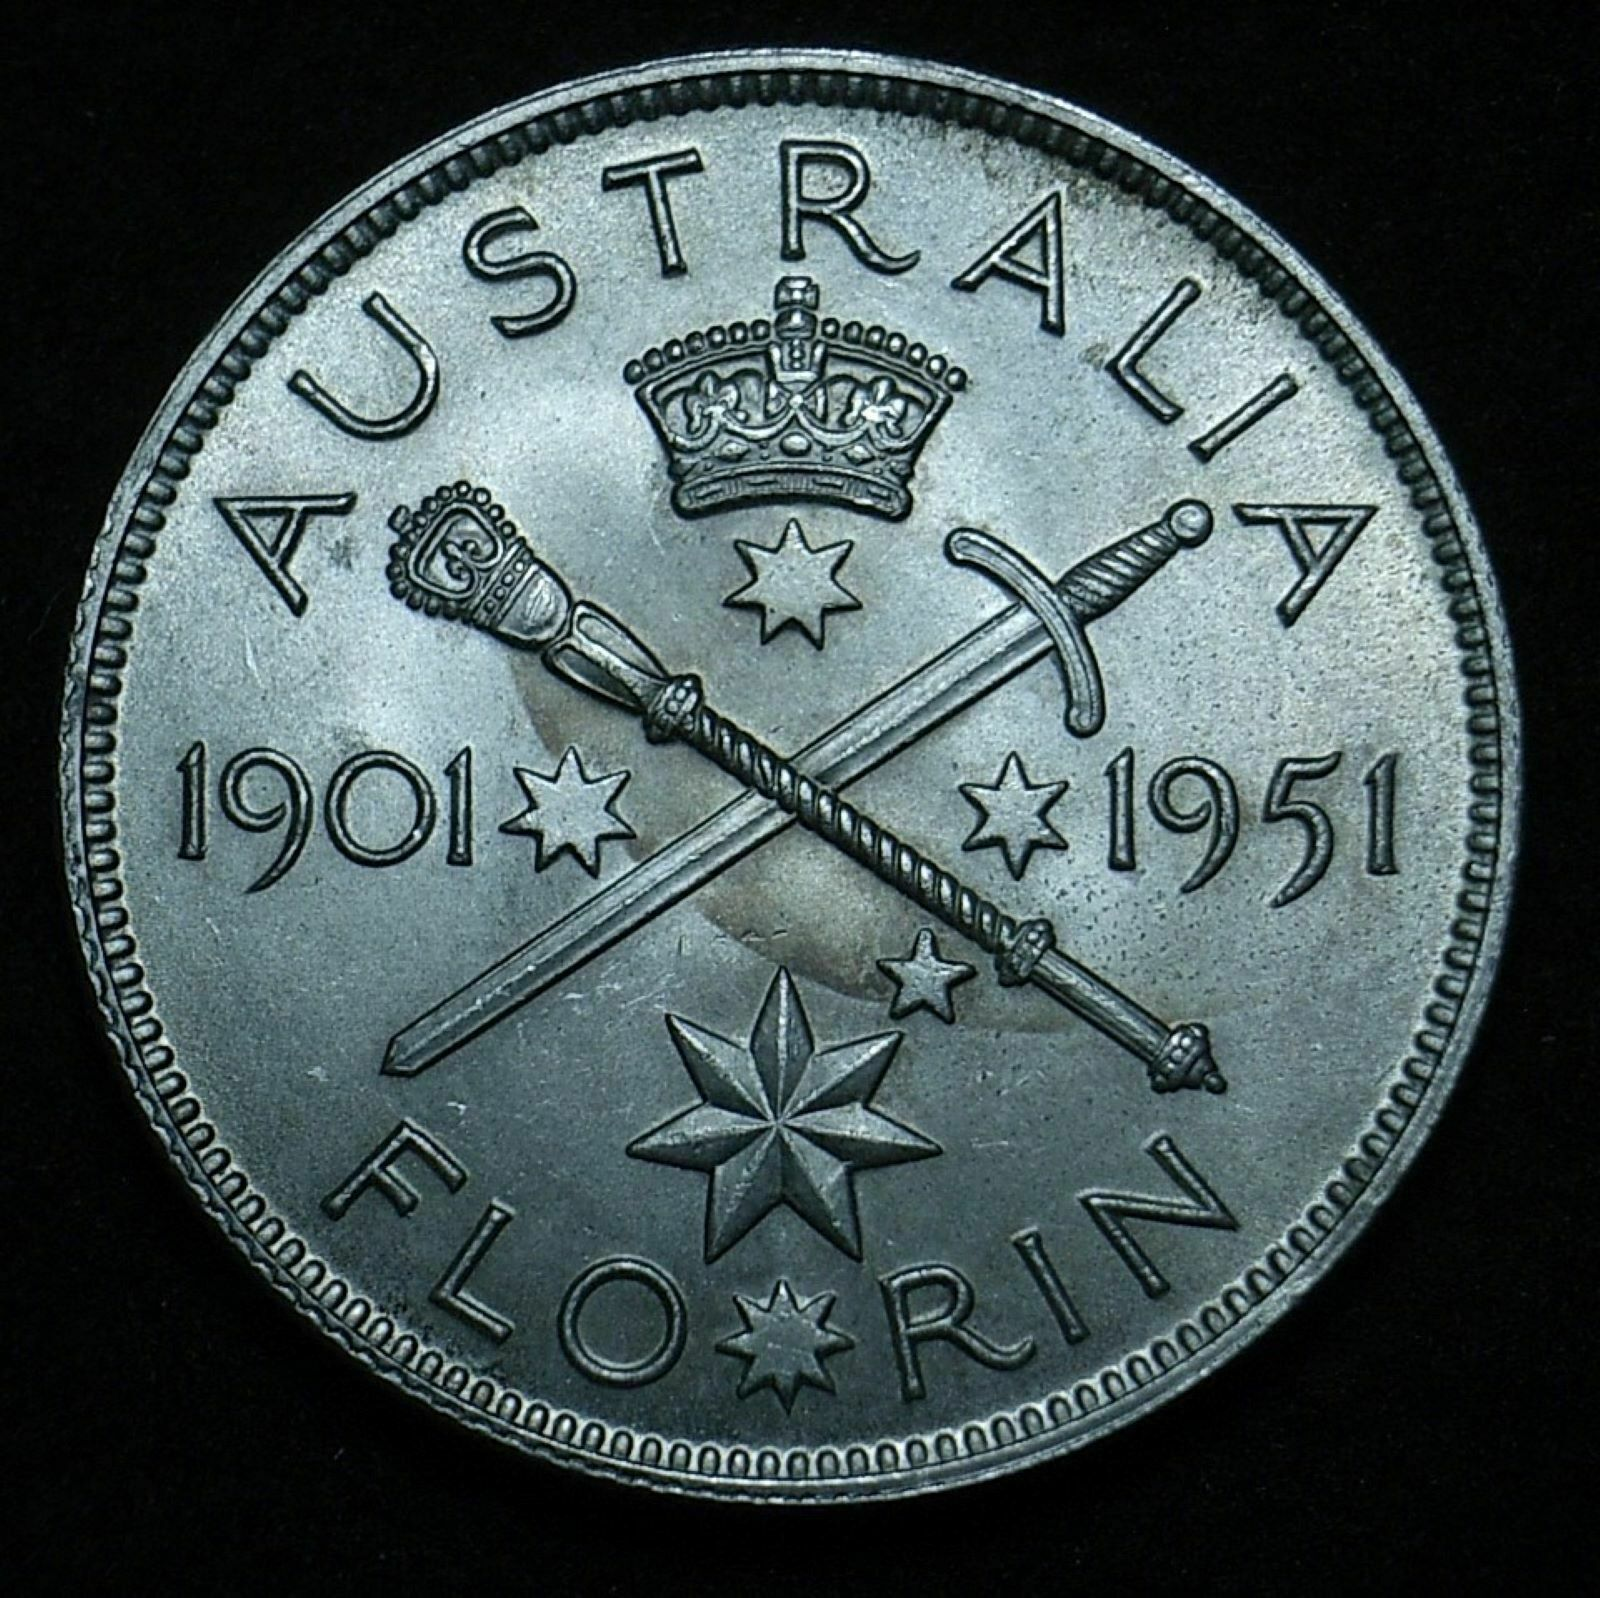 Aussie 1951 Fed florin reverse close up showing the coin's detail